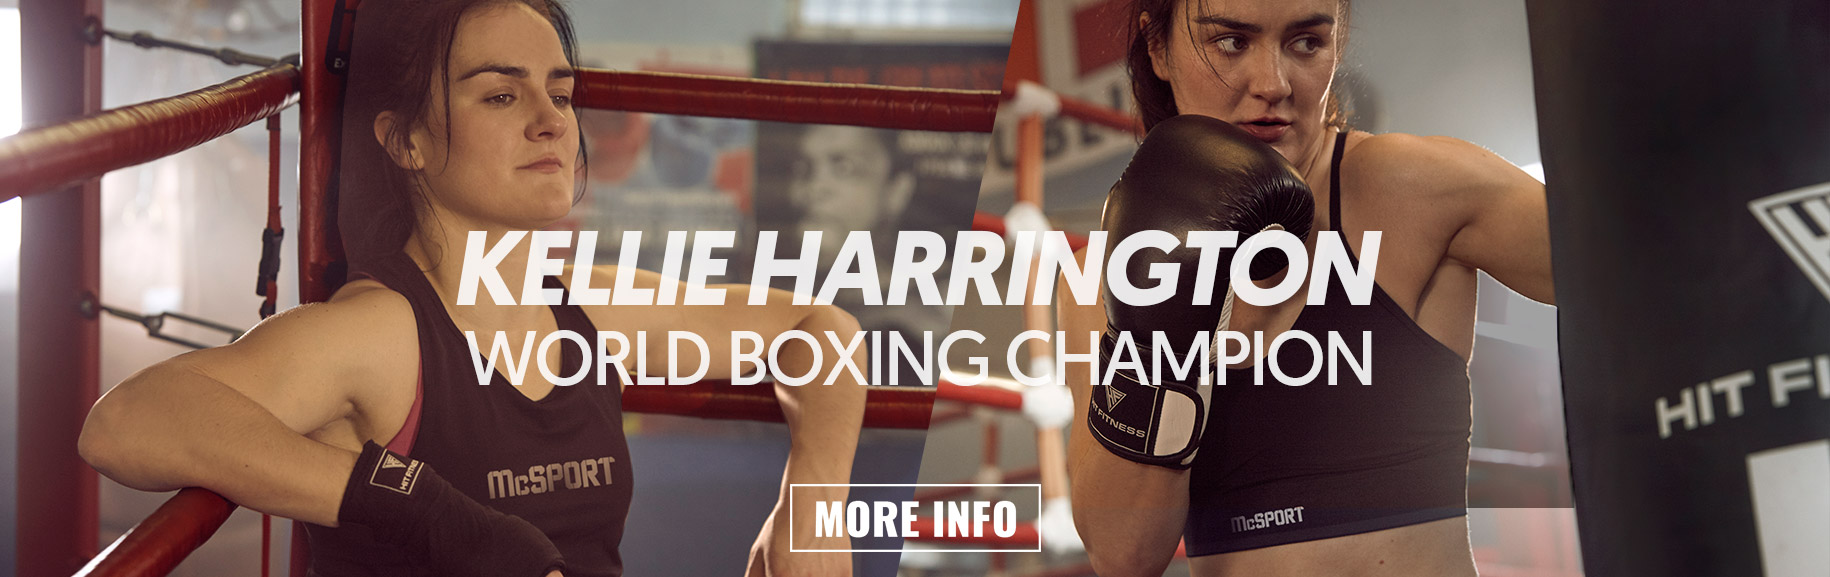 Kellie Harrington Banner